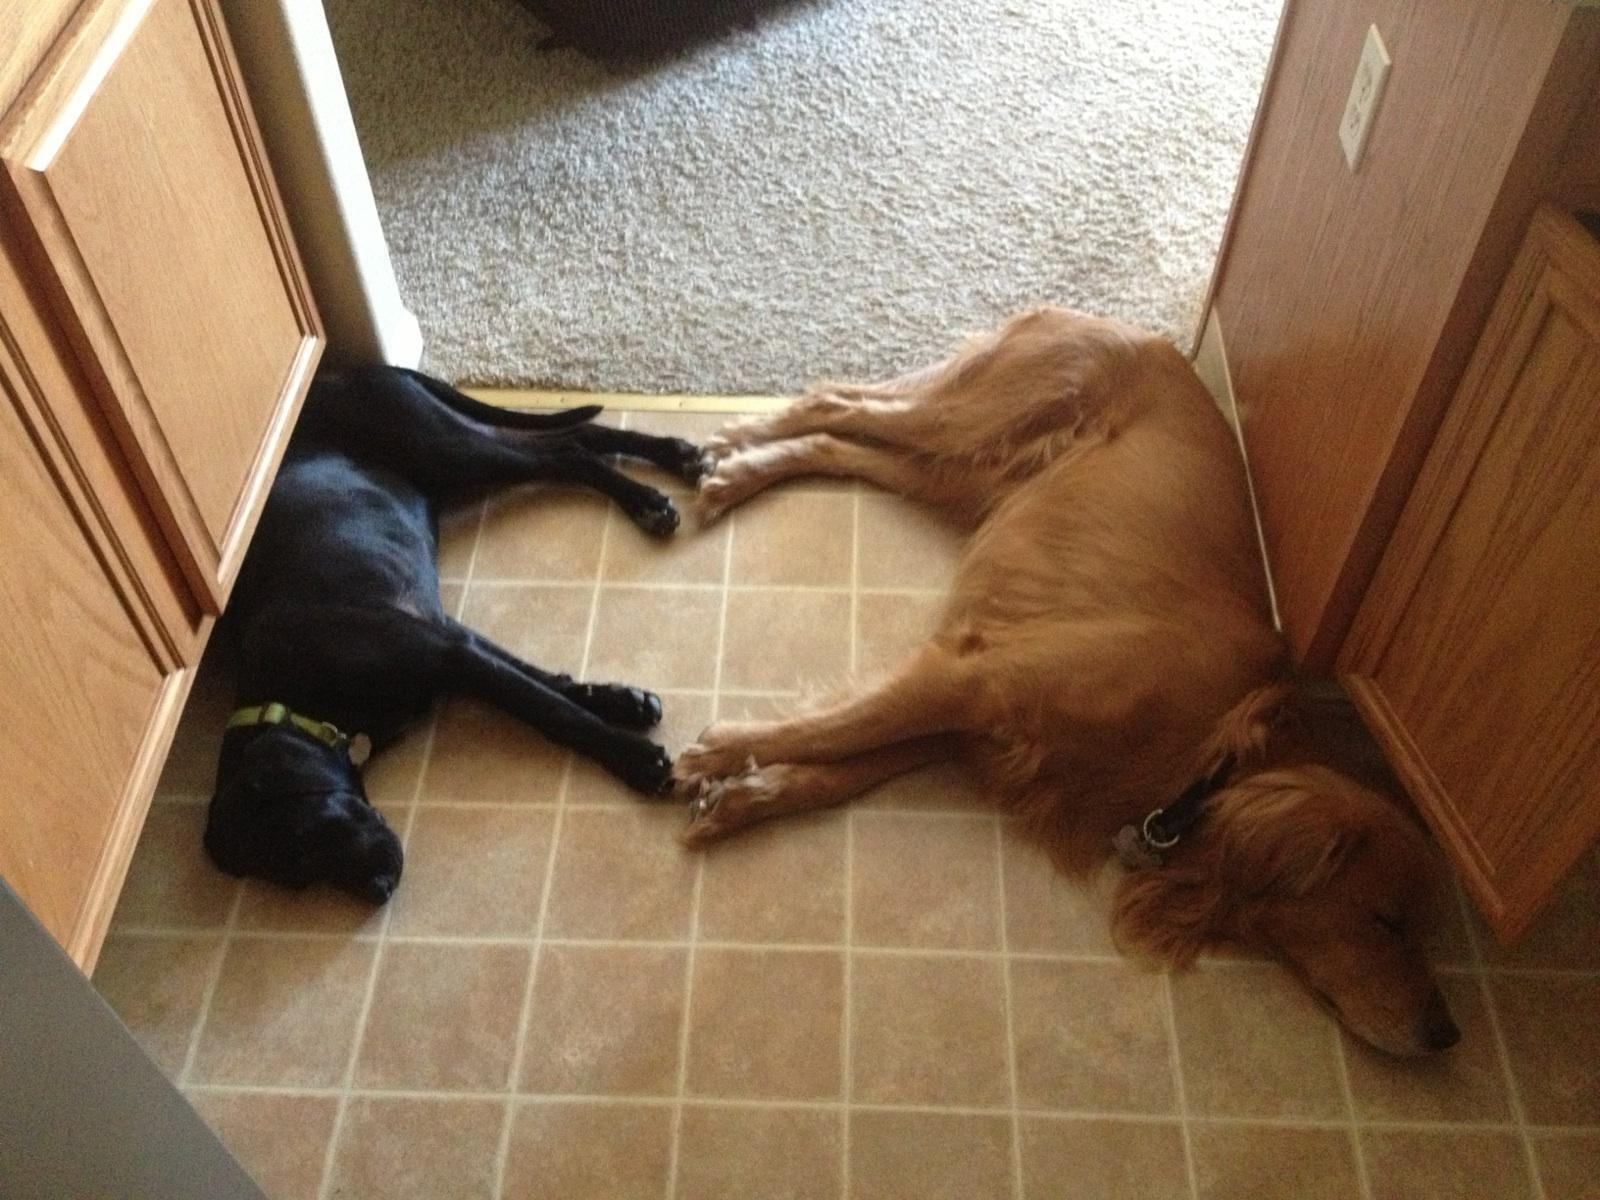 These Sleeping Dogs Formed a <3 Symbol http://t.co/lH4EpxcaVa